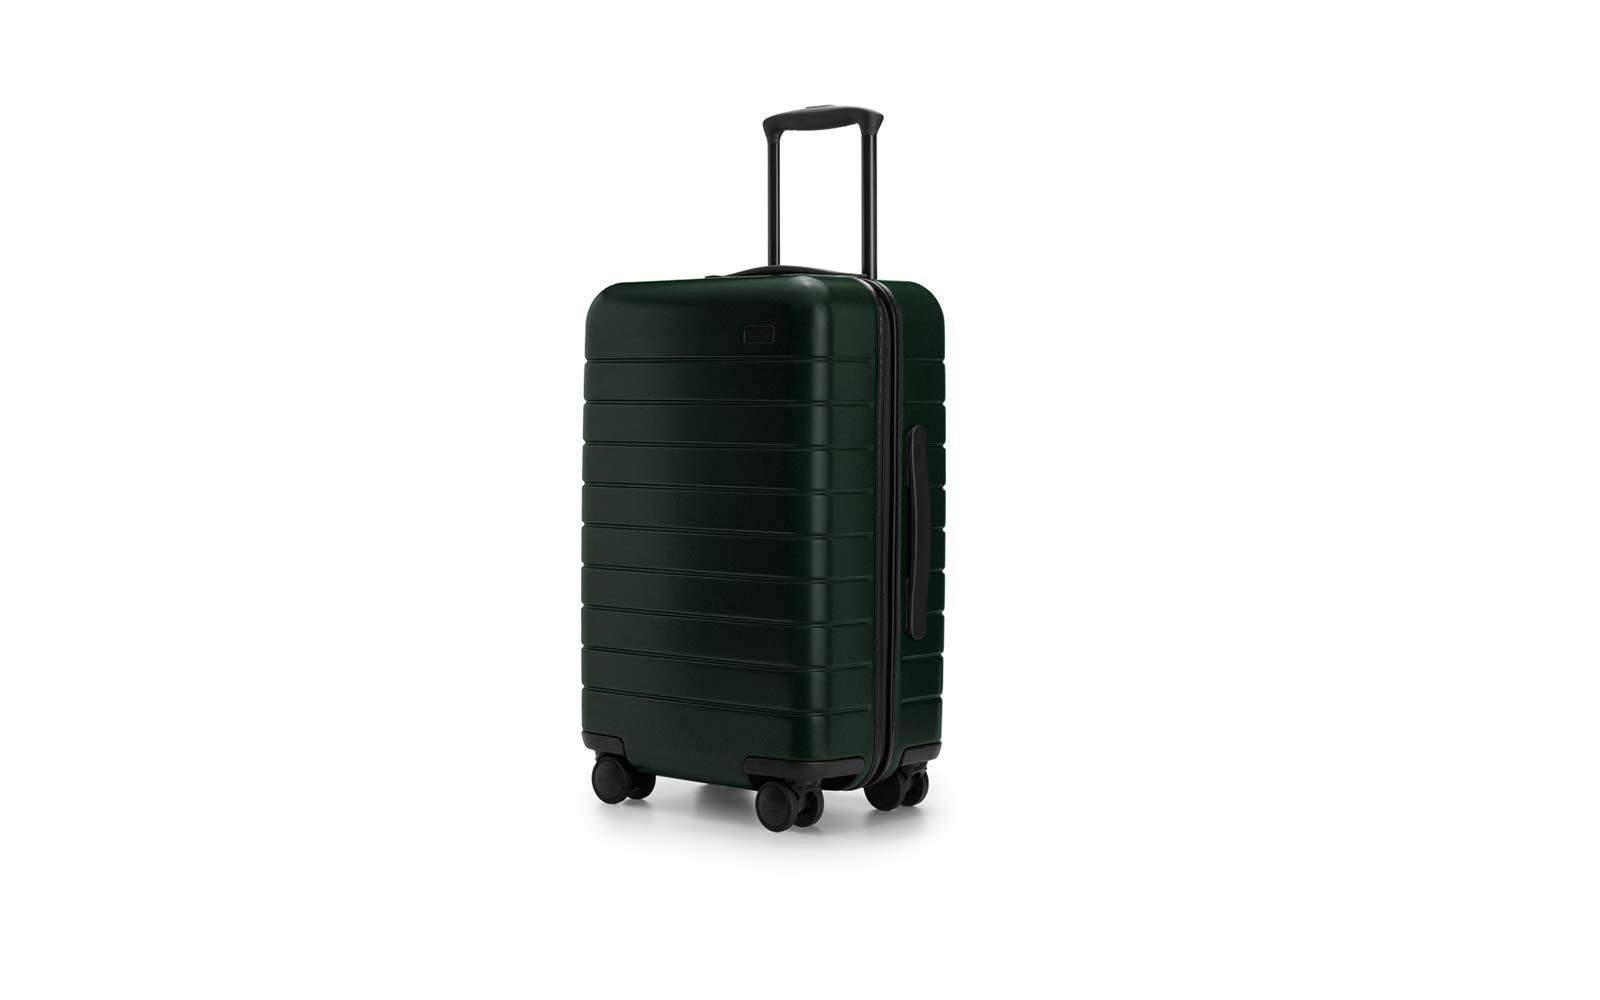 Travel Tech Gadgets Technology Away suitcase luggage